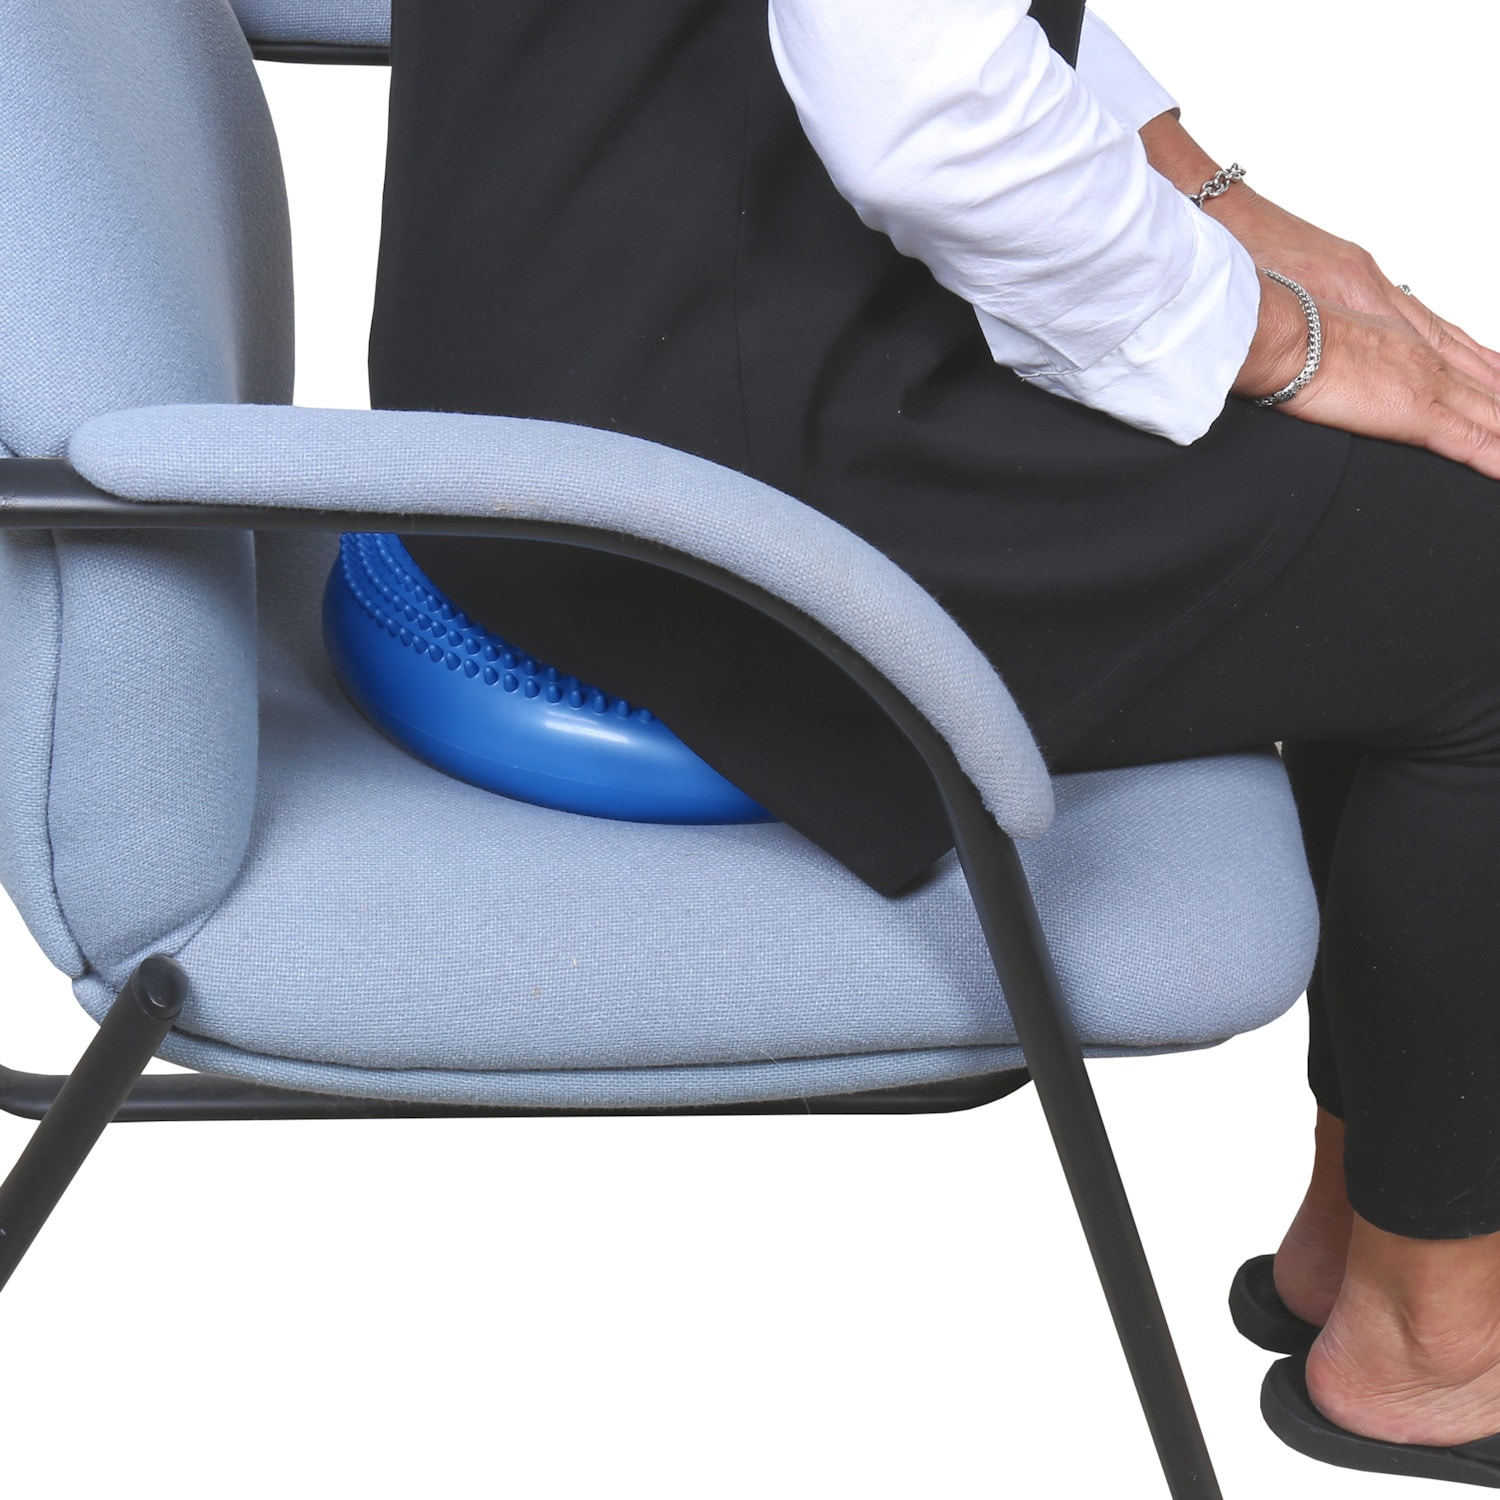 Balance Cushion Seat Chair Cushion Micro-Movement Toning Workout